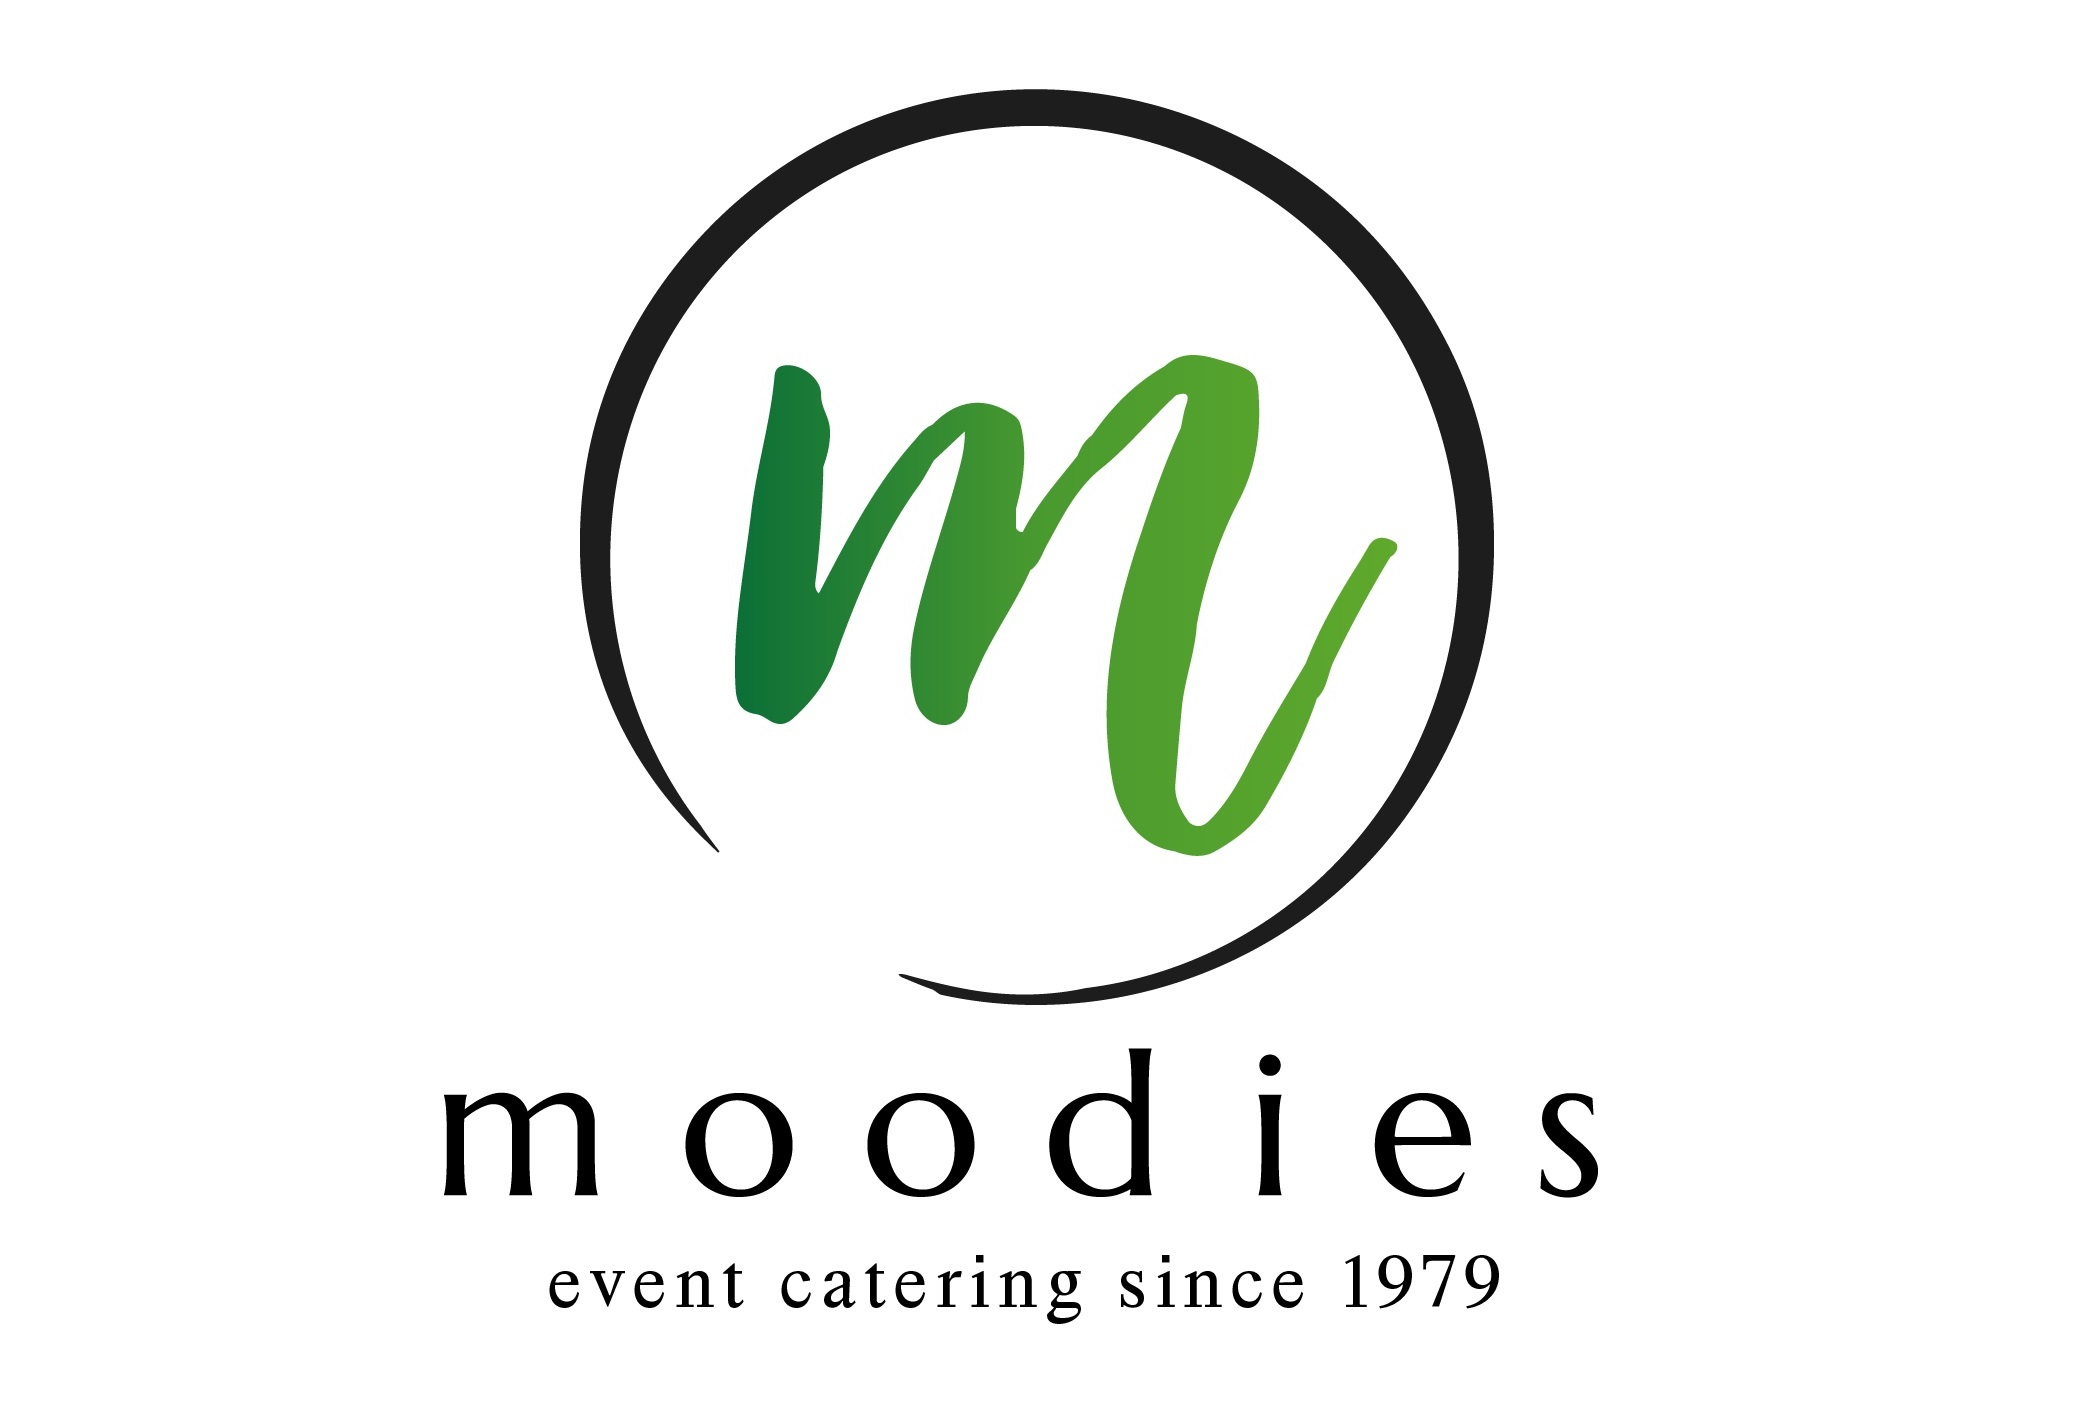 Moodies catering logo